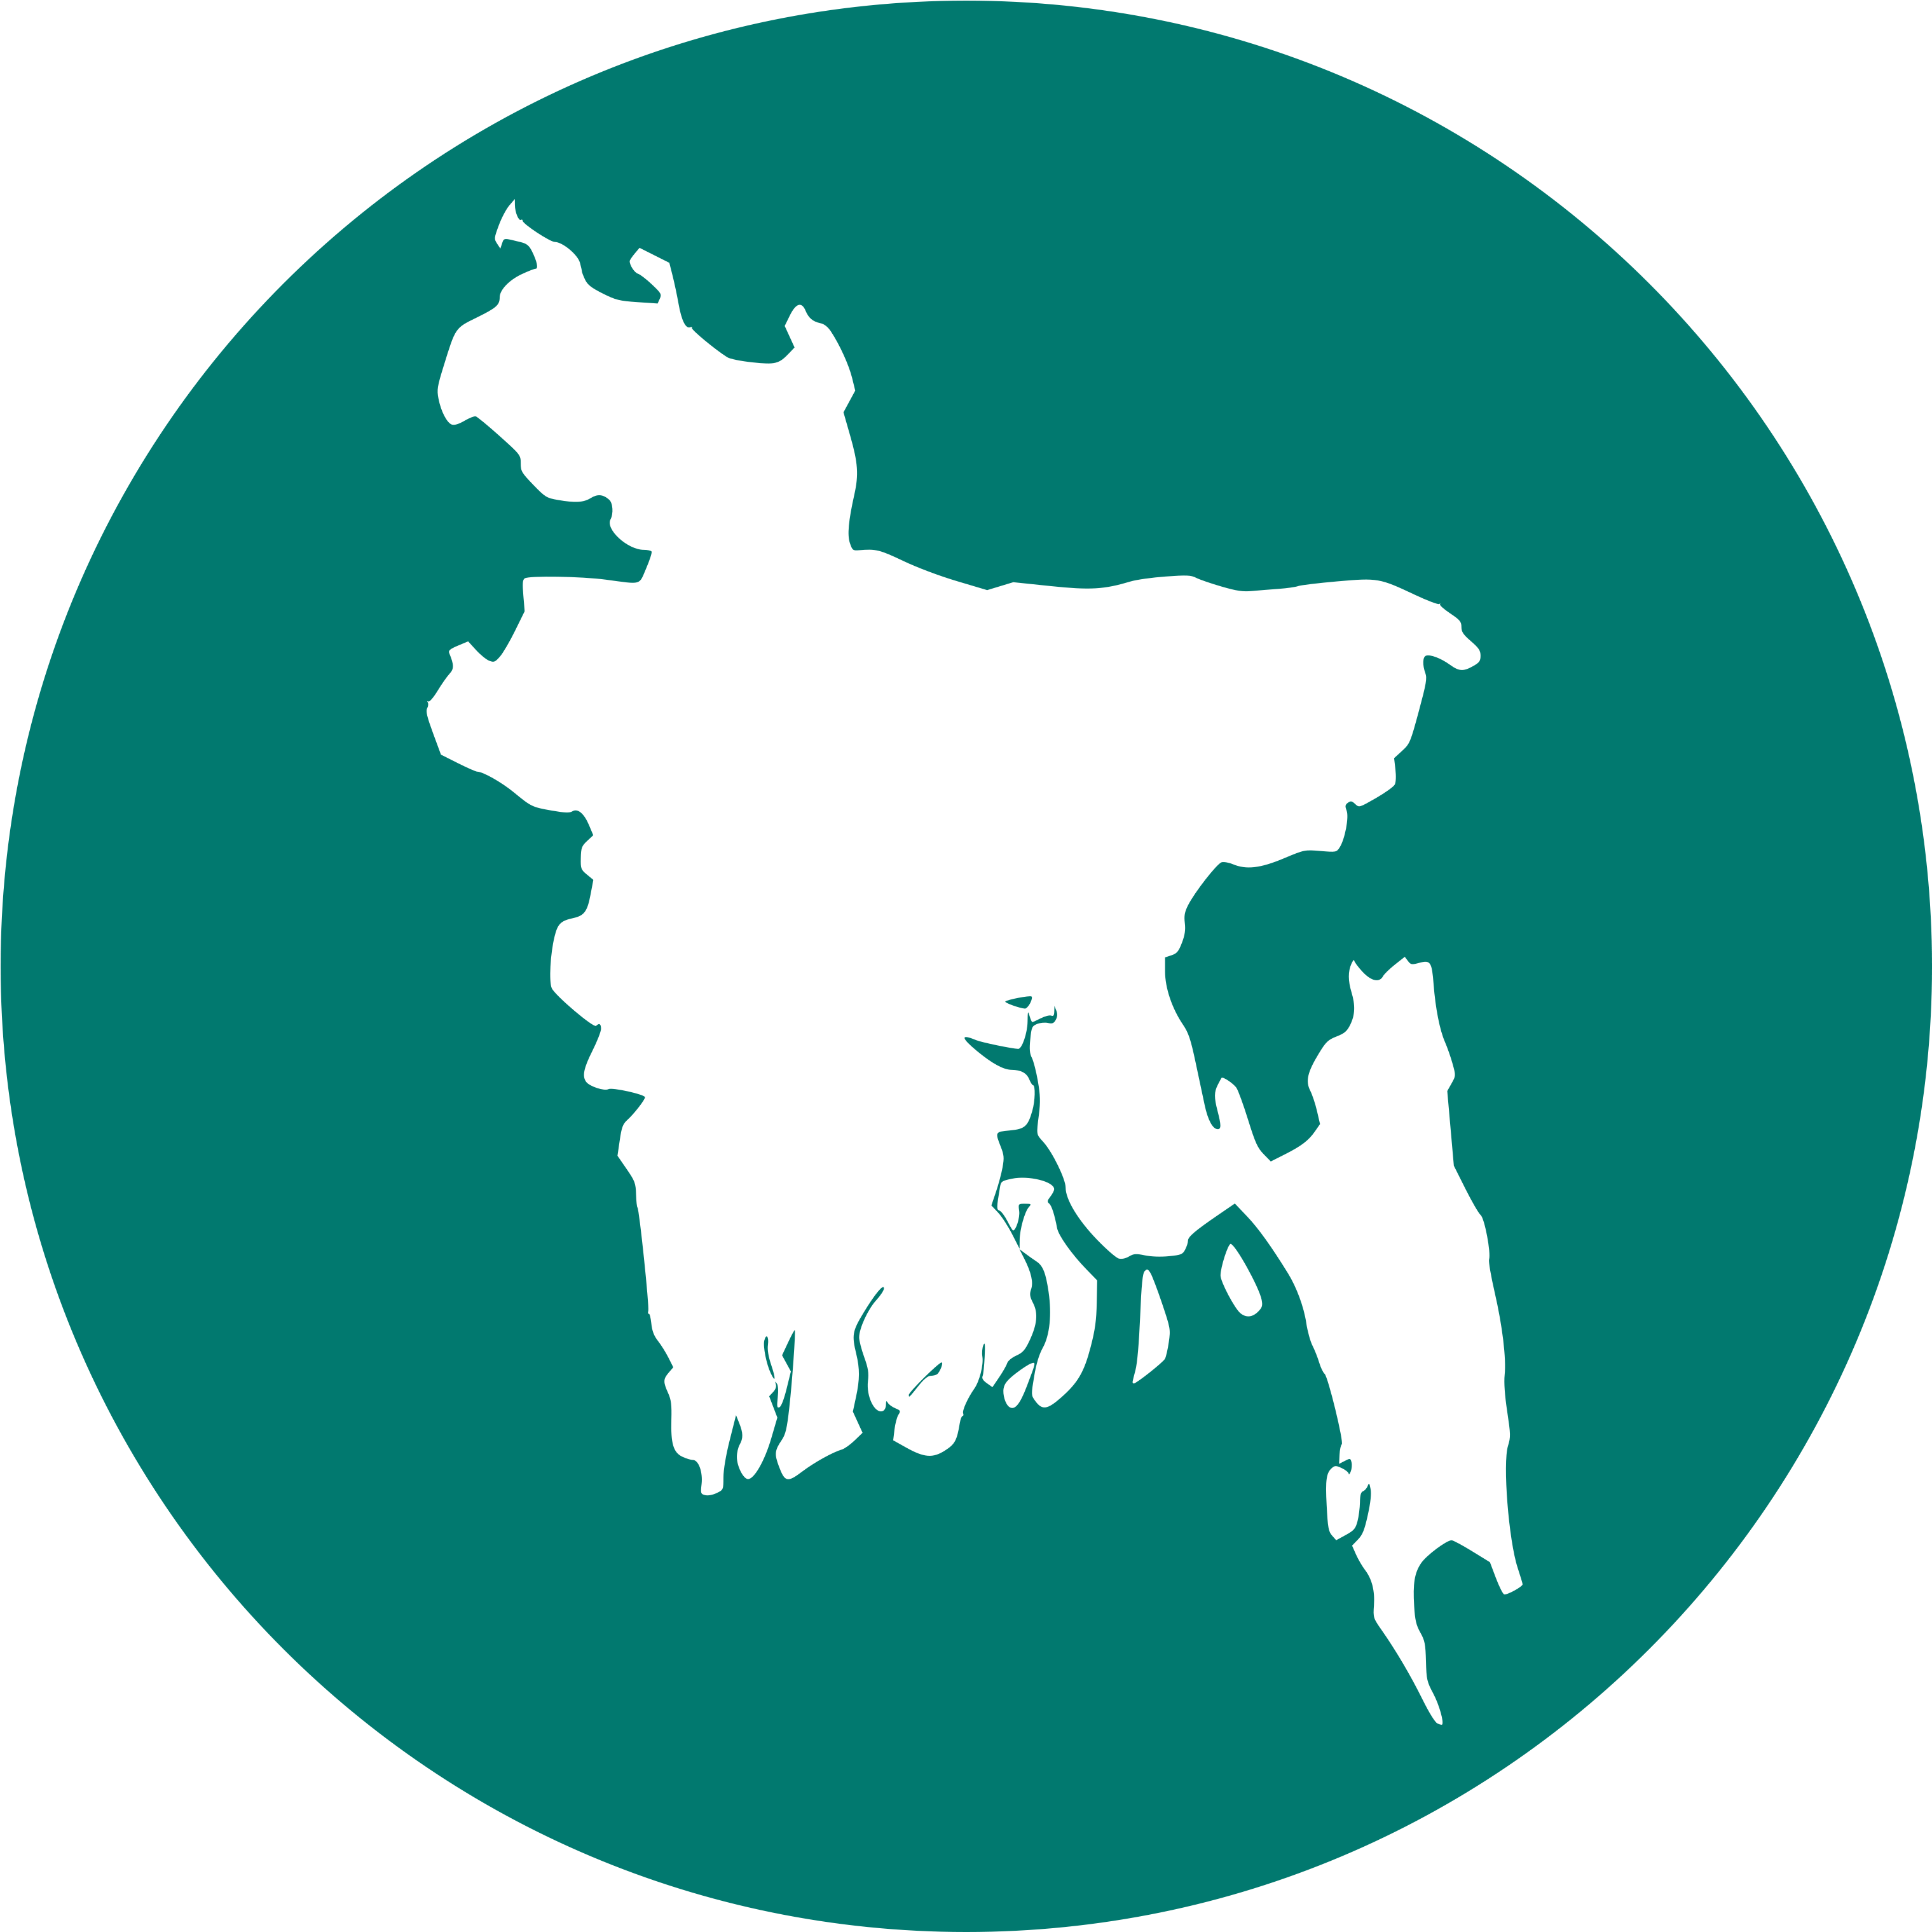 Get To Know About Bangladesh.